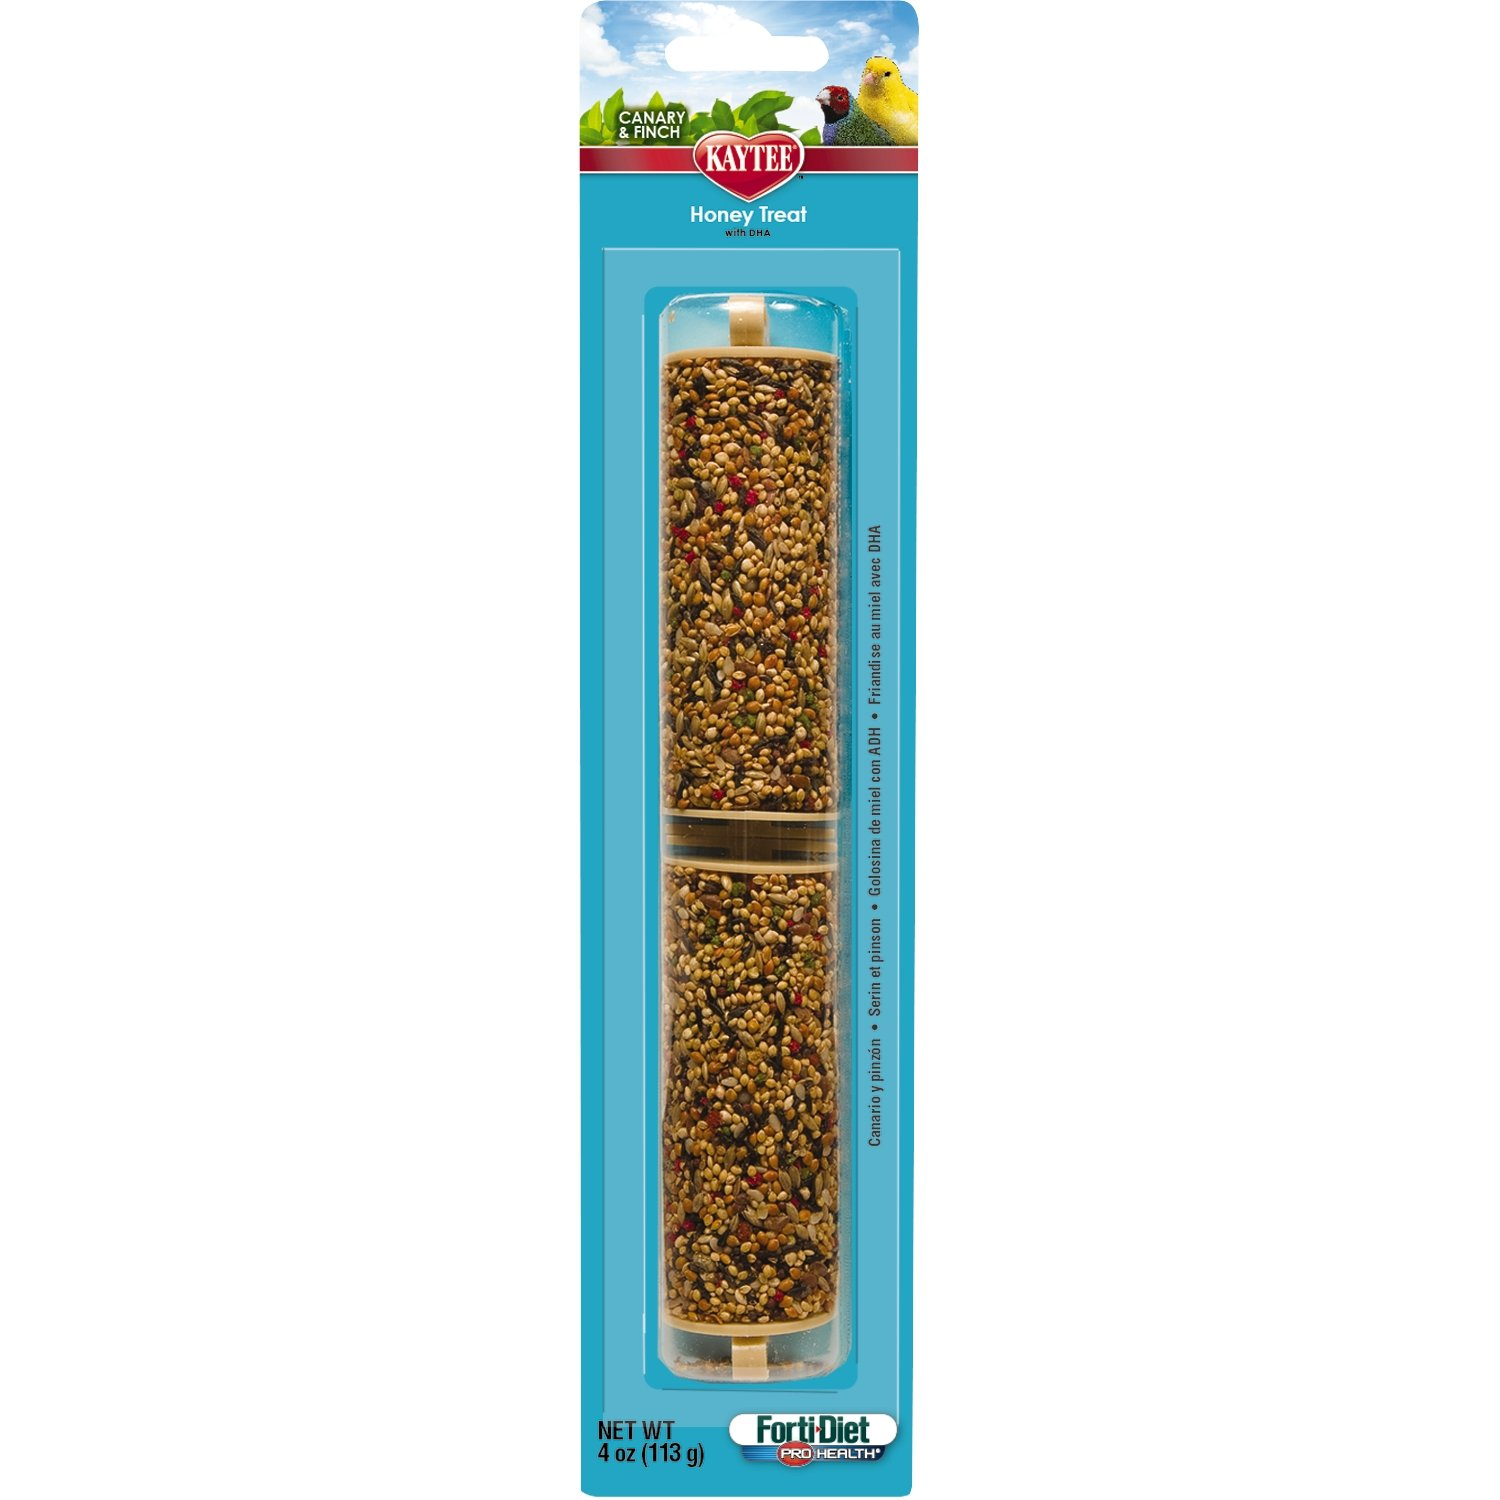 Kaytee Forti-Diet Pro Health Honey Stick Canary & Finch Treats